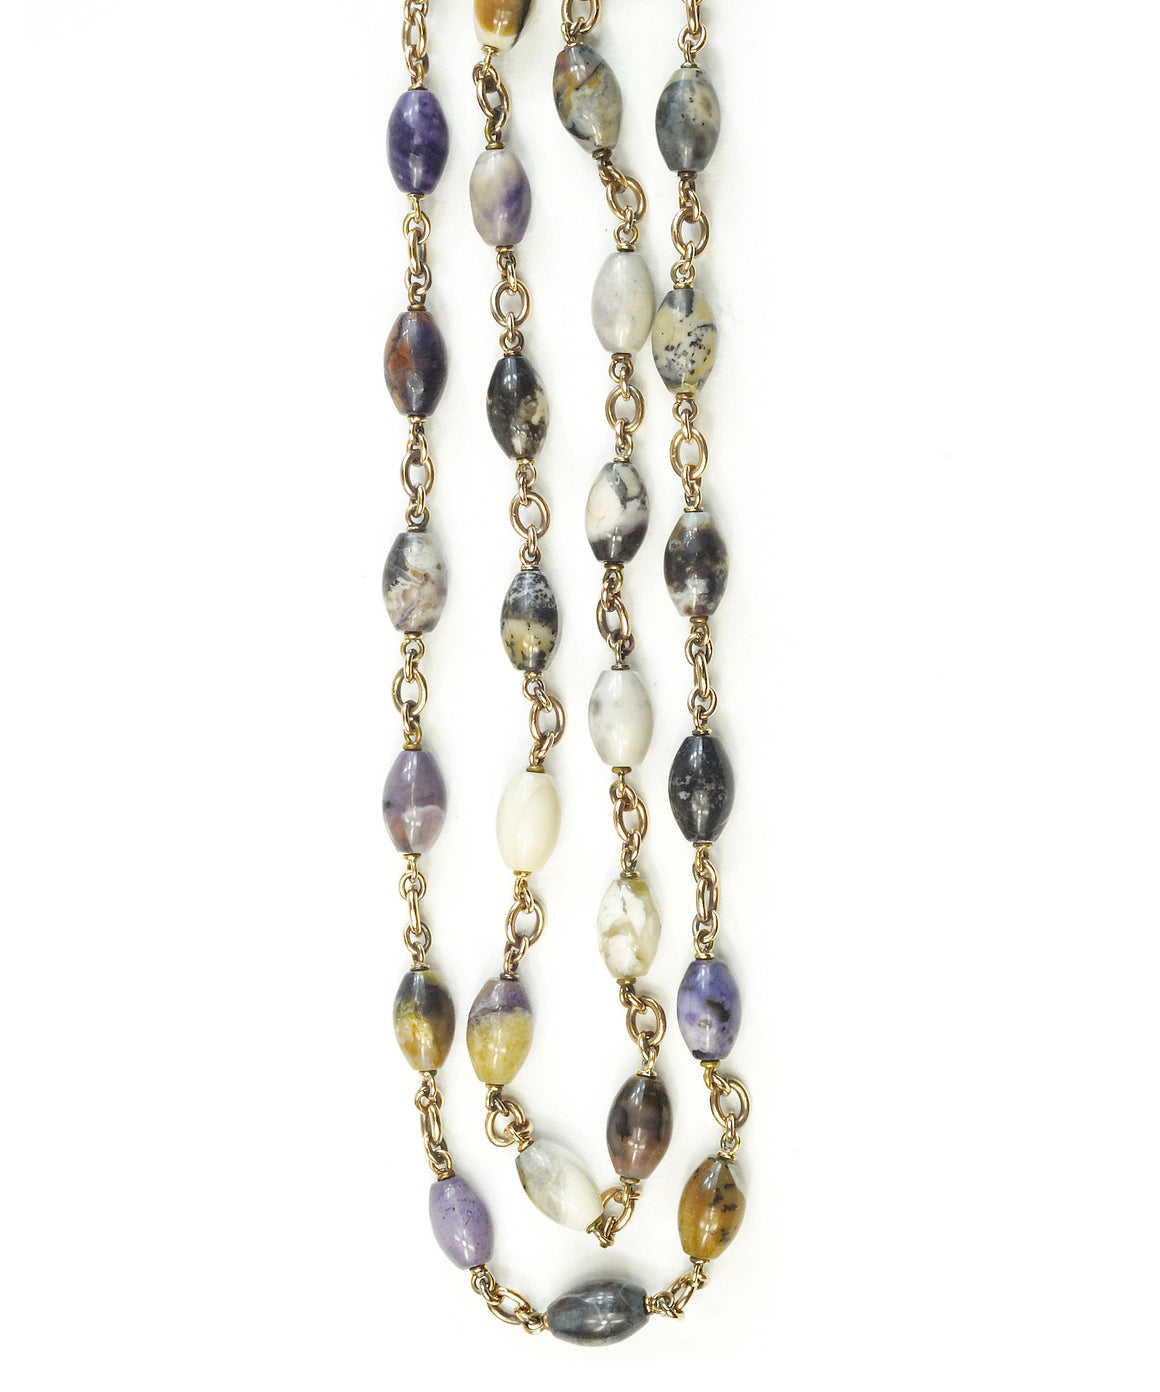 Fluorite and opal bead necklace